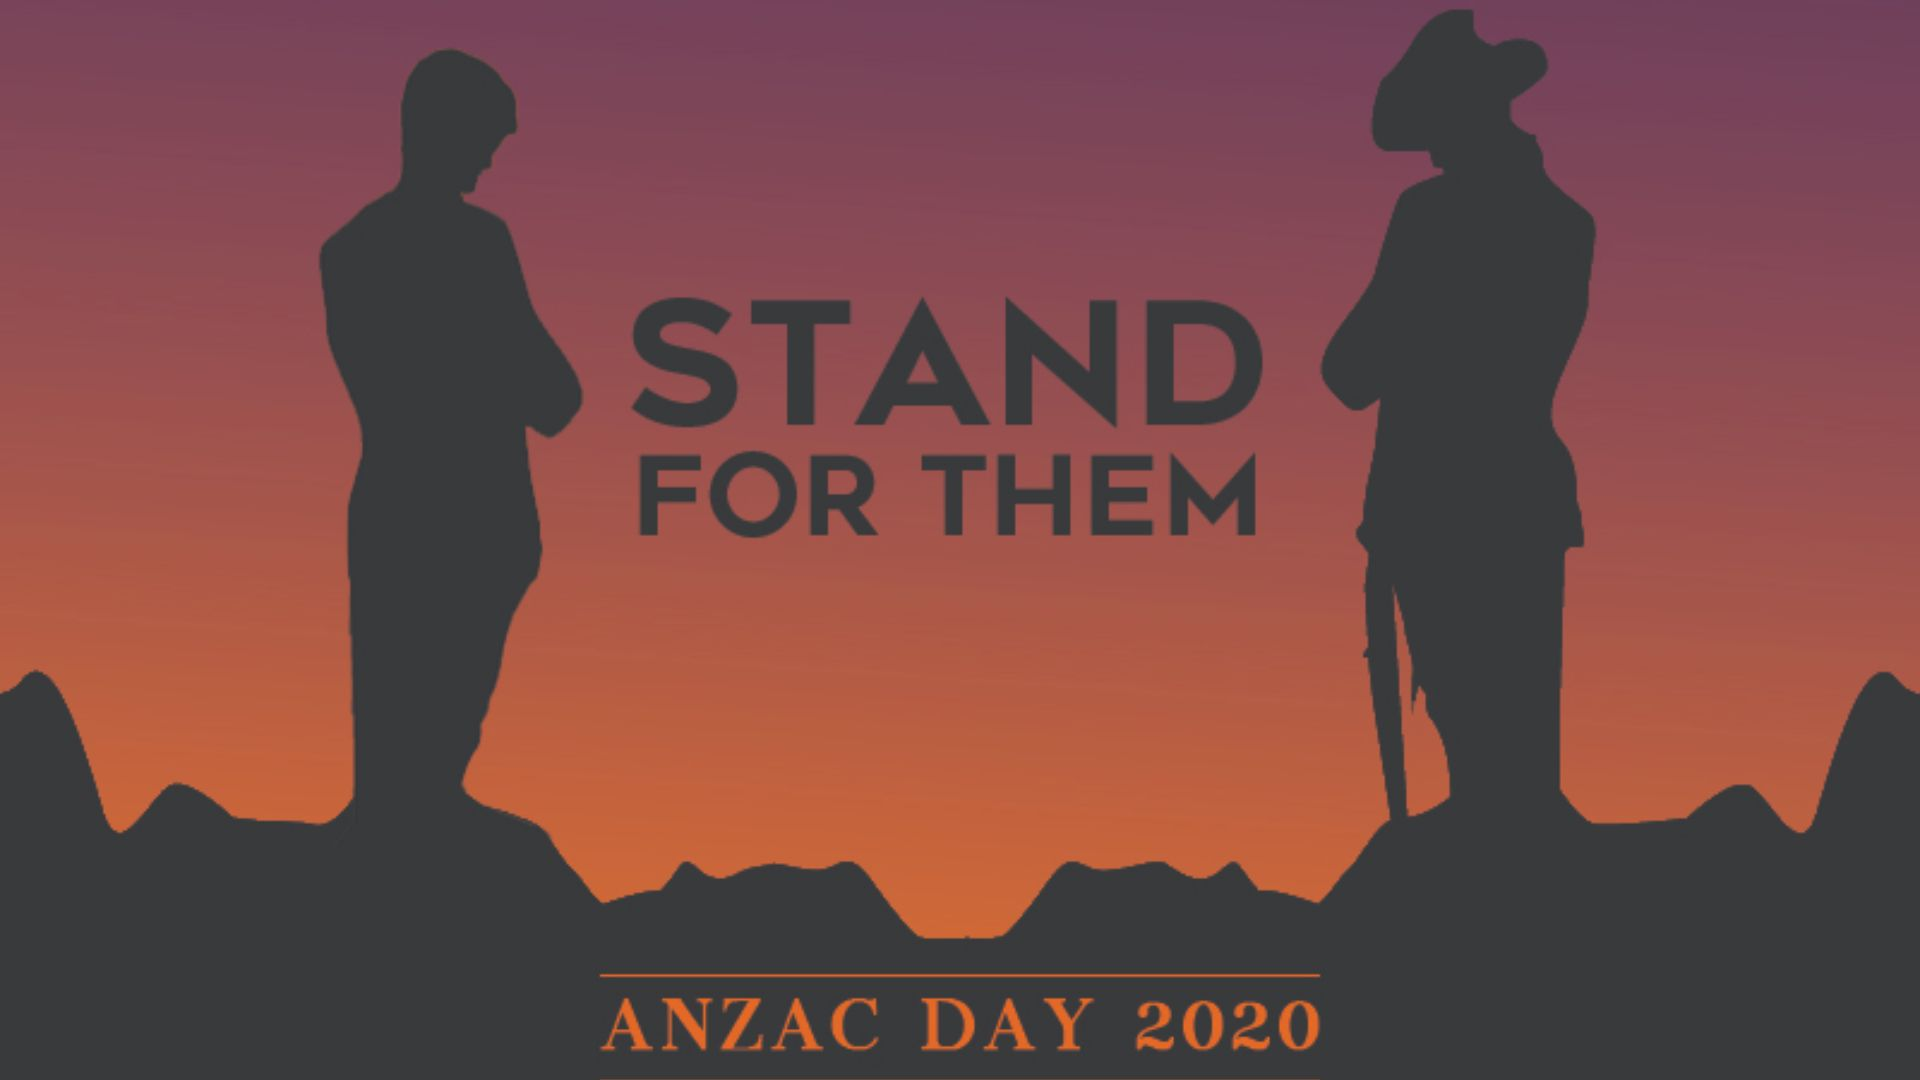 Bathurst radio stations to broadcast special 2020 ANZAC Day dawn service